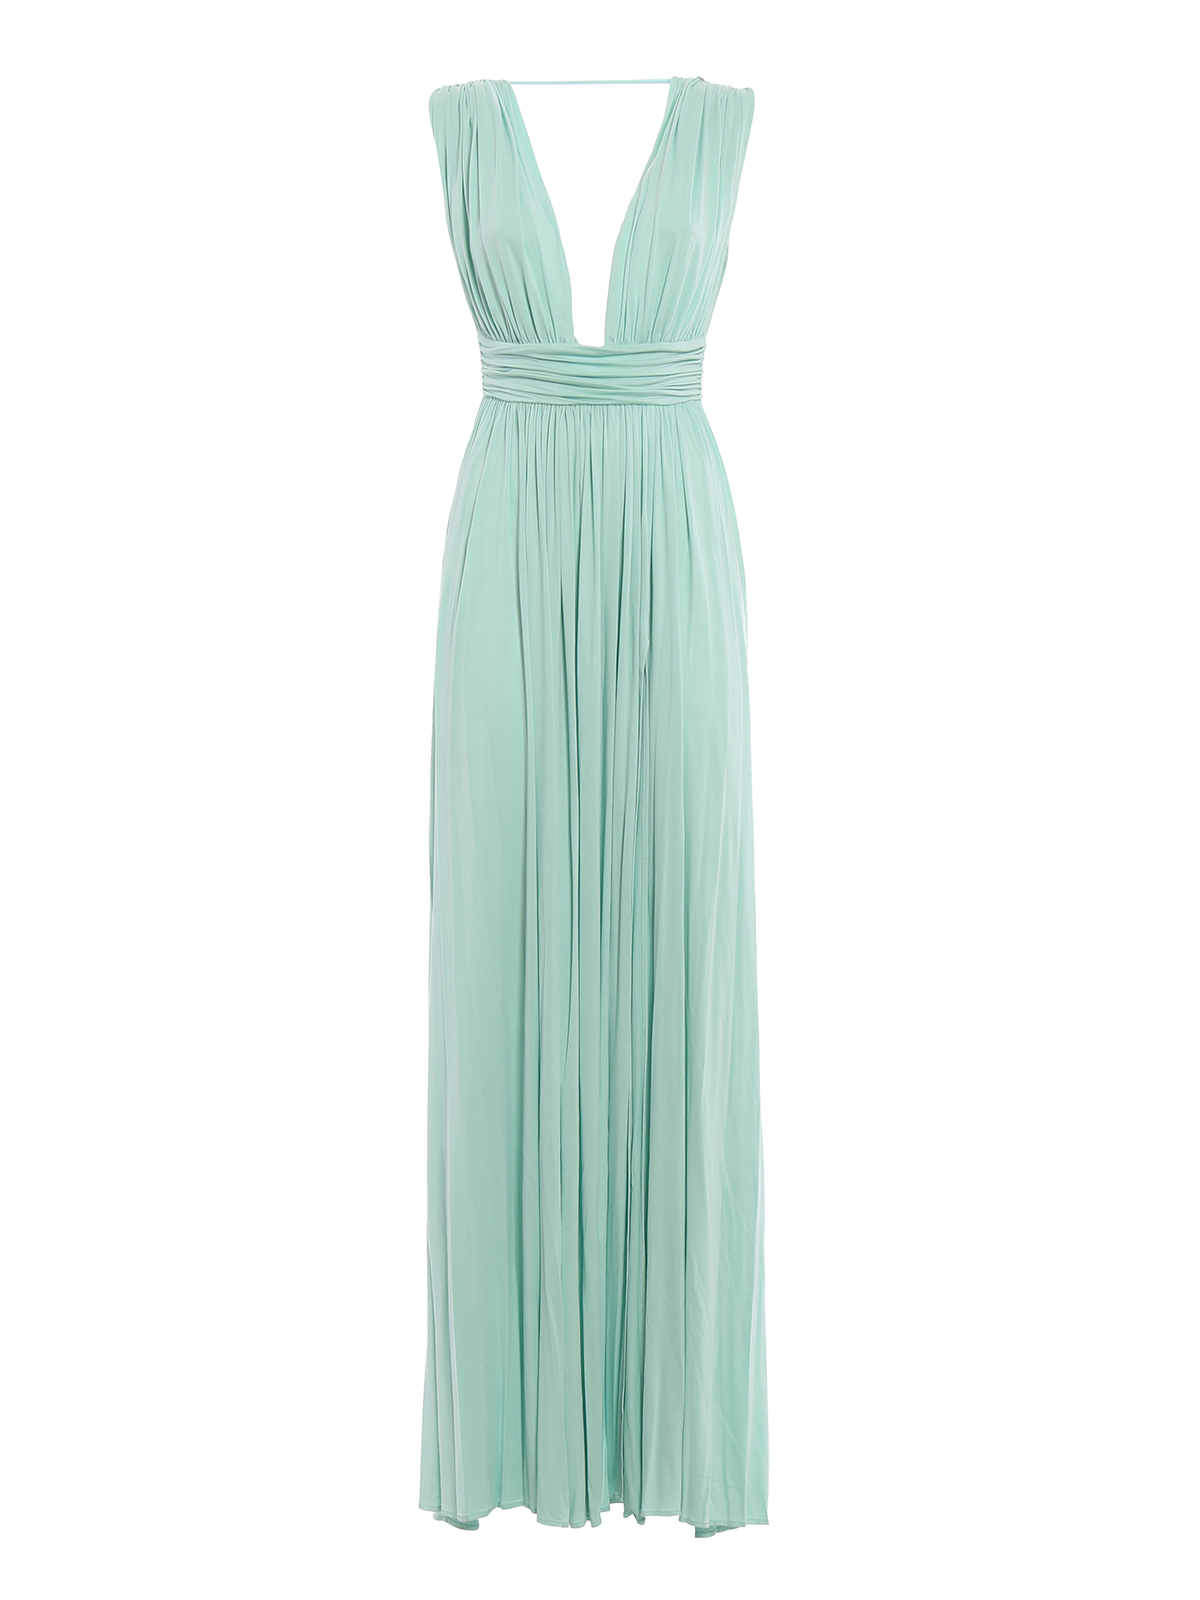 Abiti Da Sera Elisabetta Franchi.Elisabetta Franchi Romantic Silky Greek Dress Evening Dresses